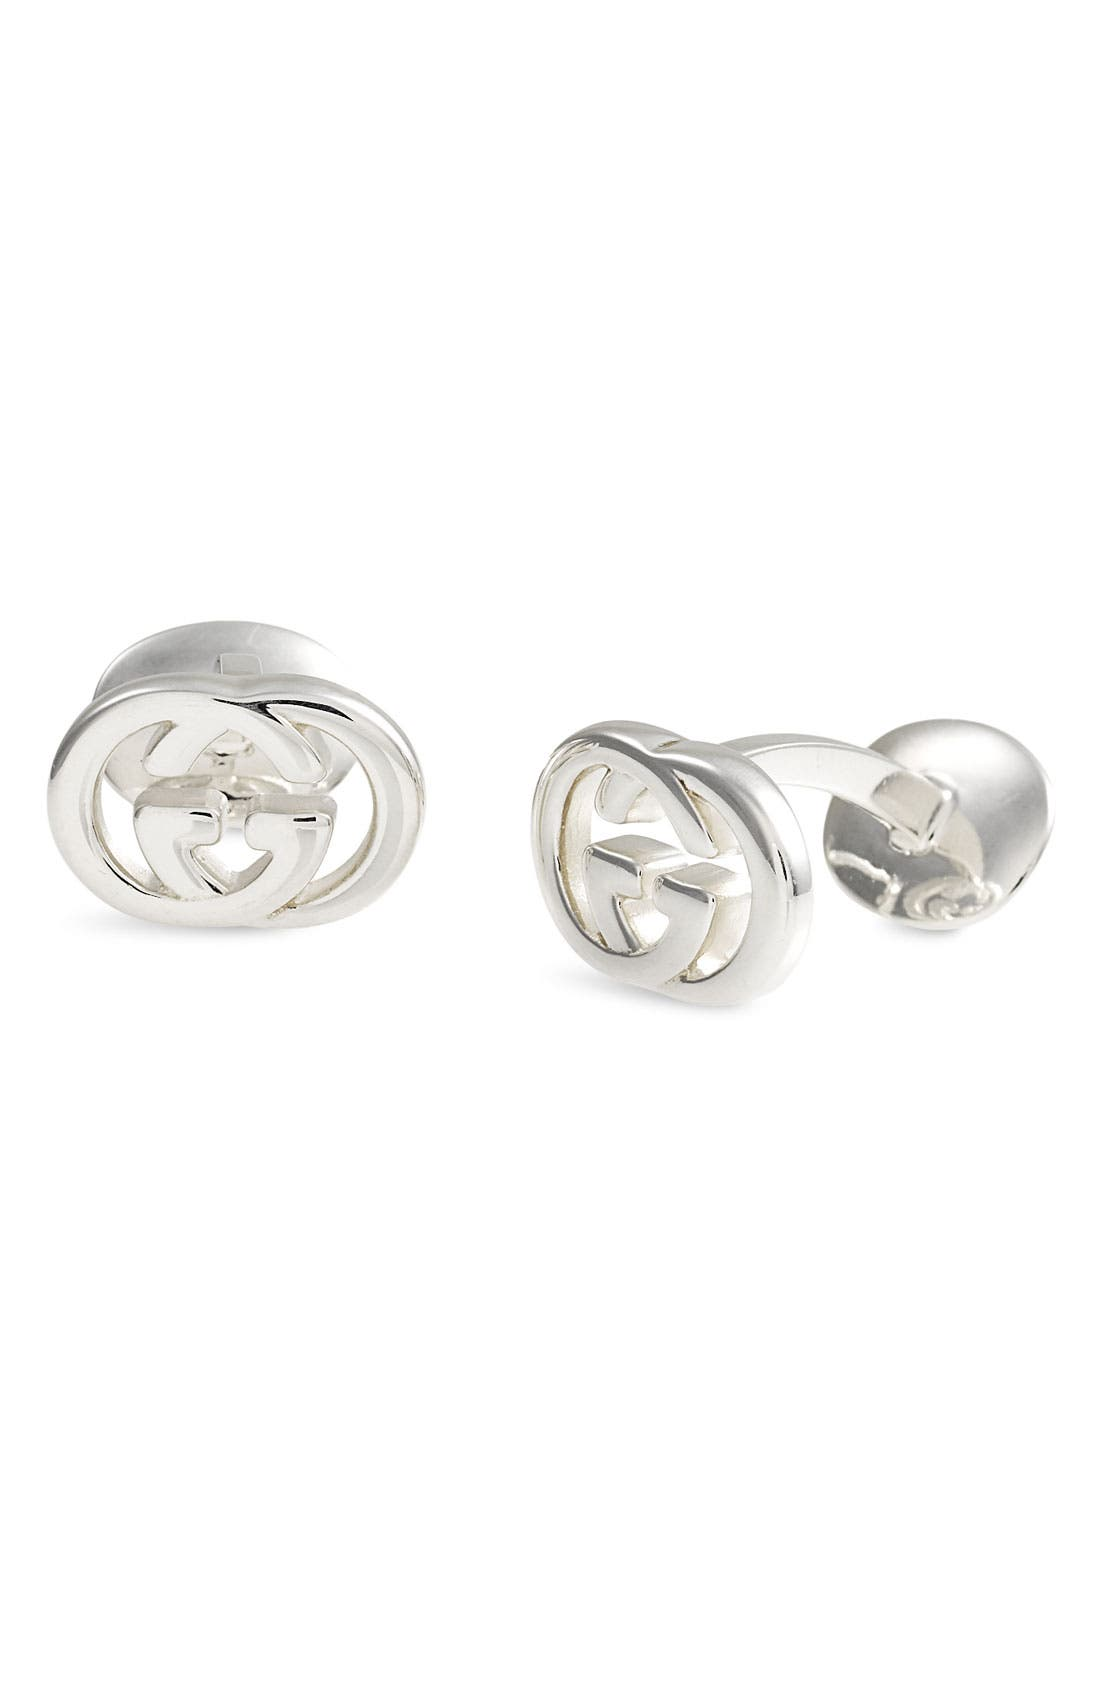 Alternate Image 1 Selected - Gucci 'Silver Britt' Cuff Links